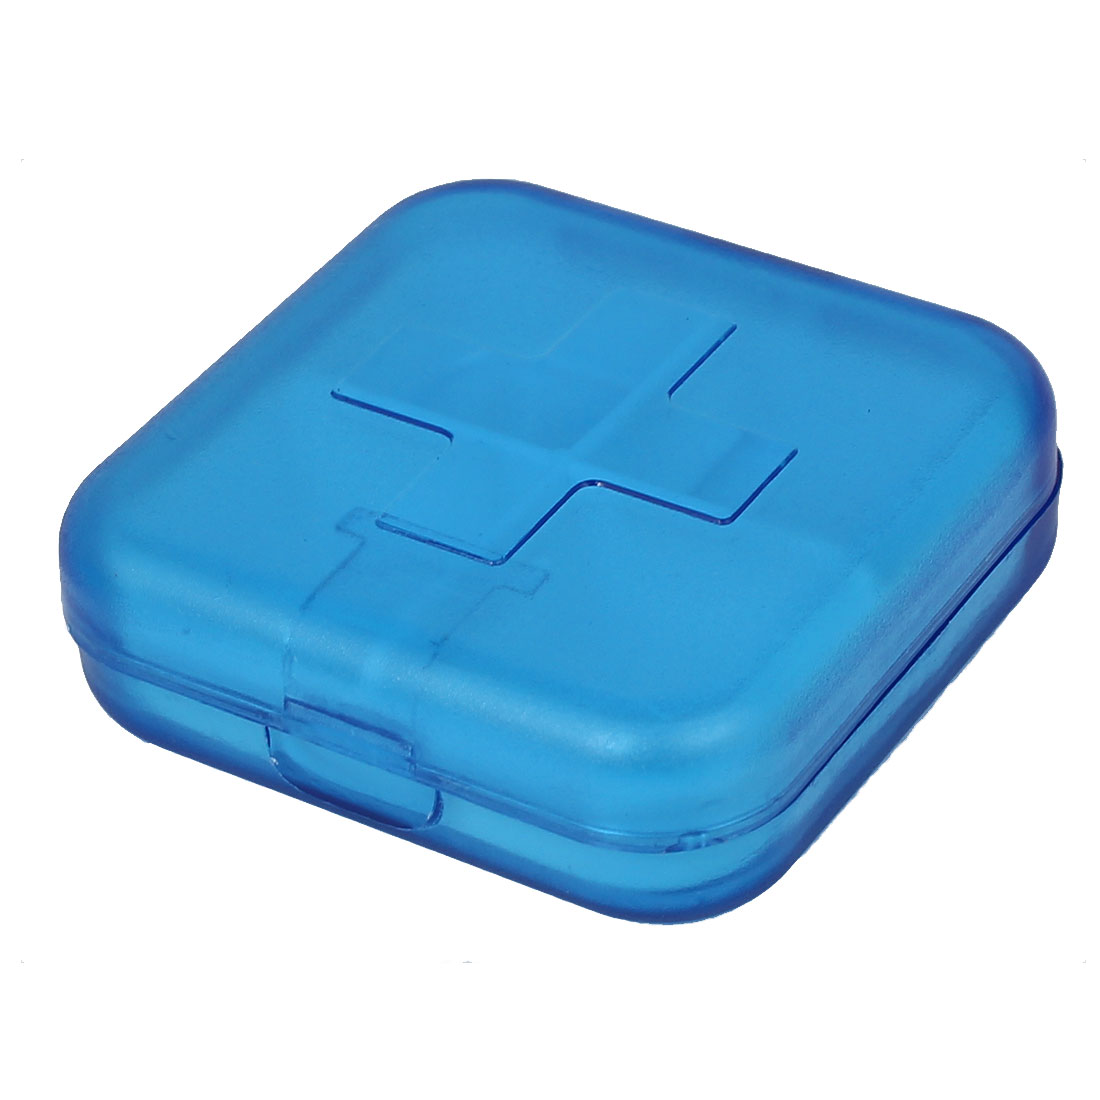 Plastic 4 Compartments Pill Box Tablet Holder Case Organizer Container Clear Blue